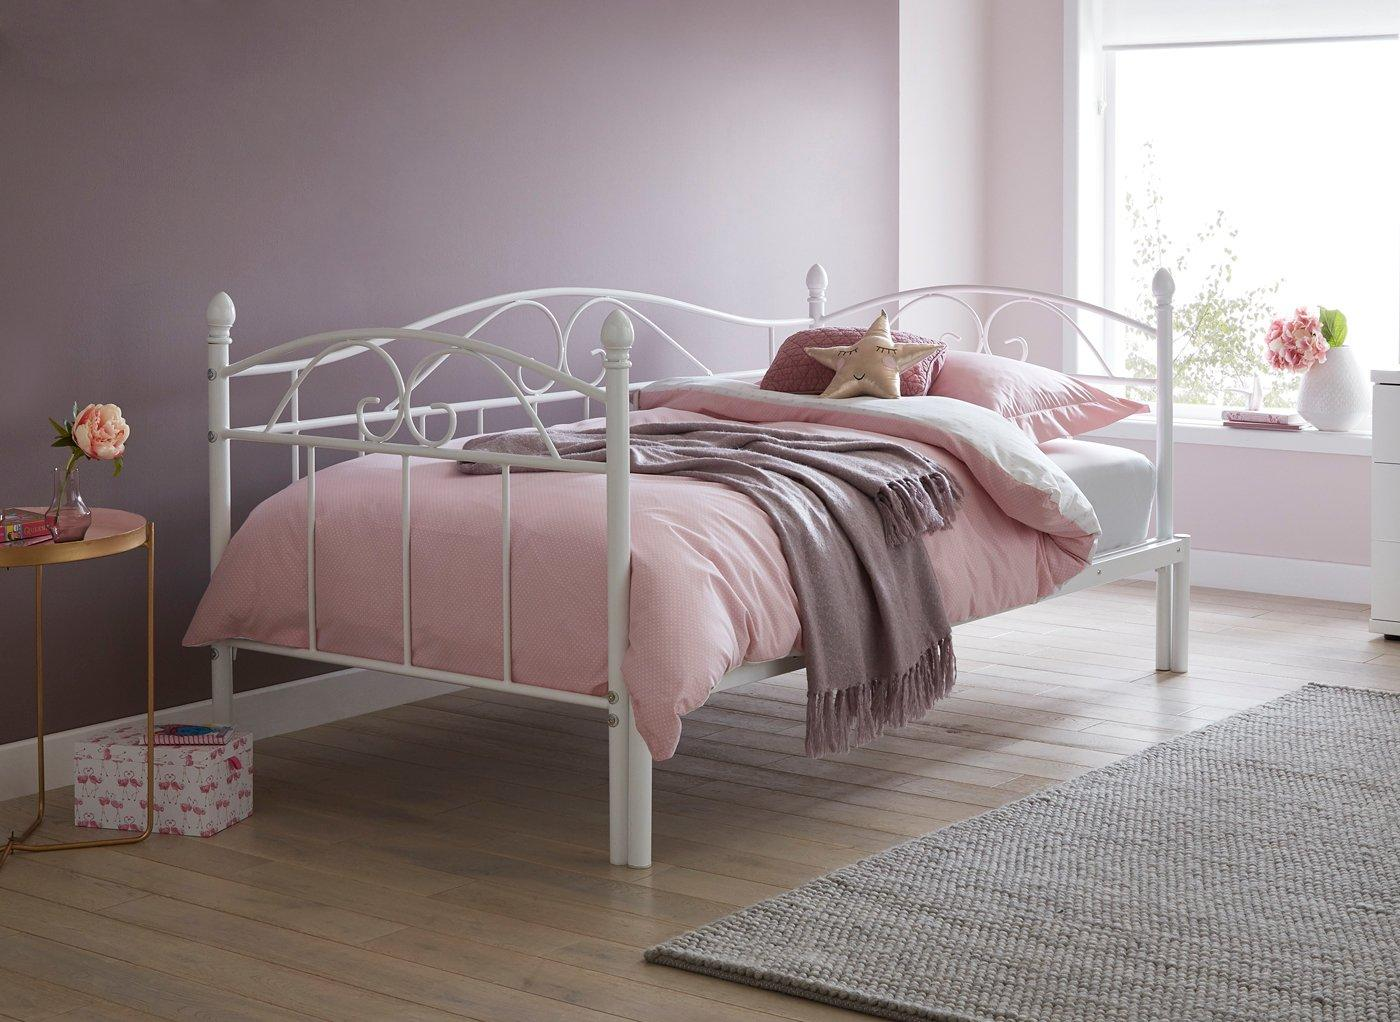 Kylie S Metal Bed Frame Pink 3 0 Single White Bed Sava